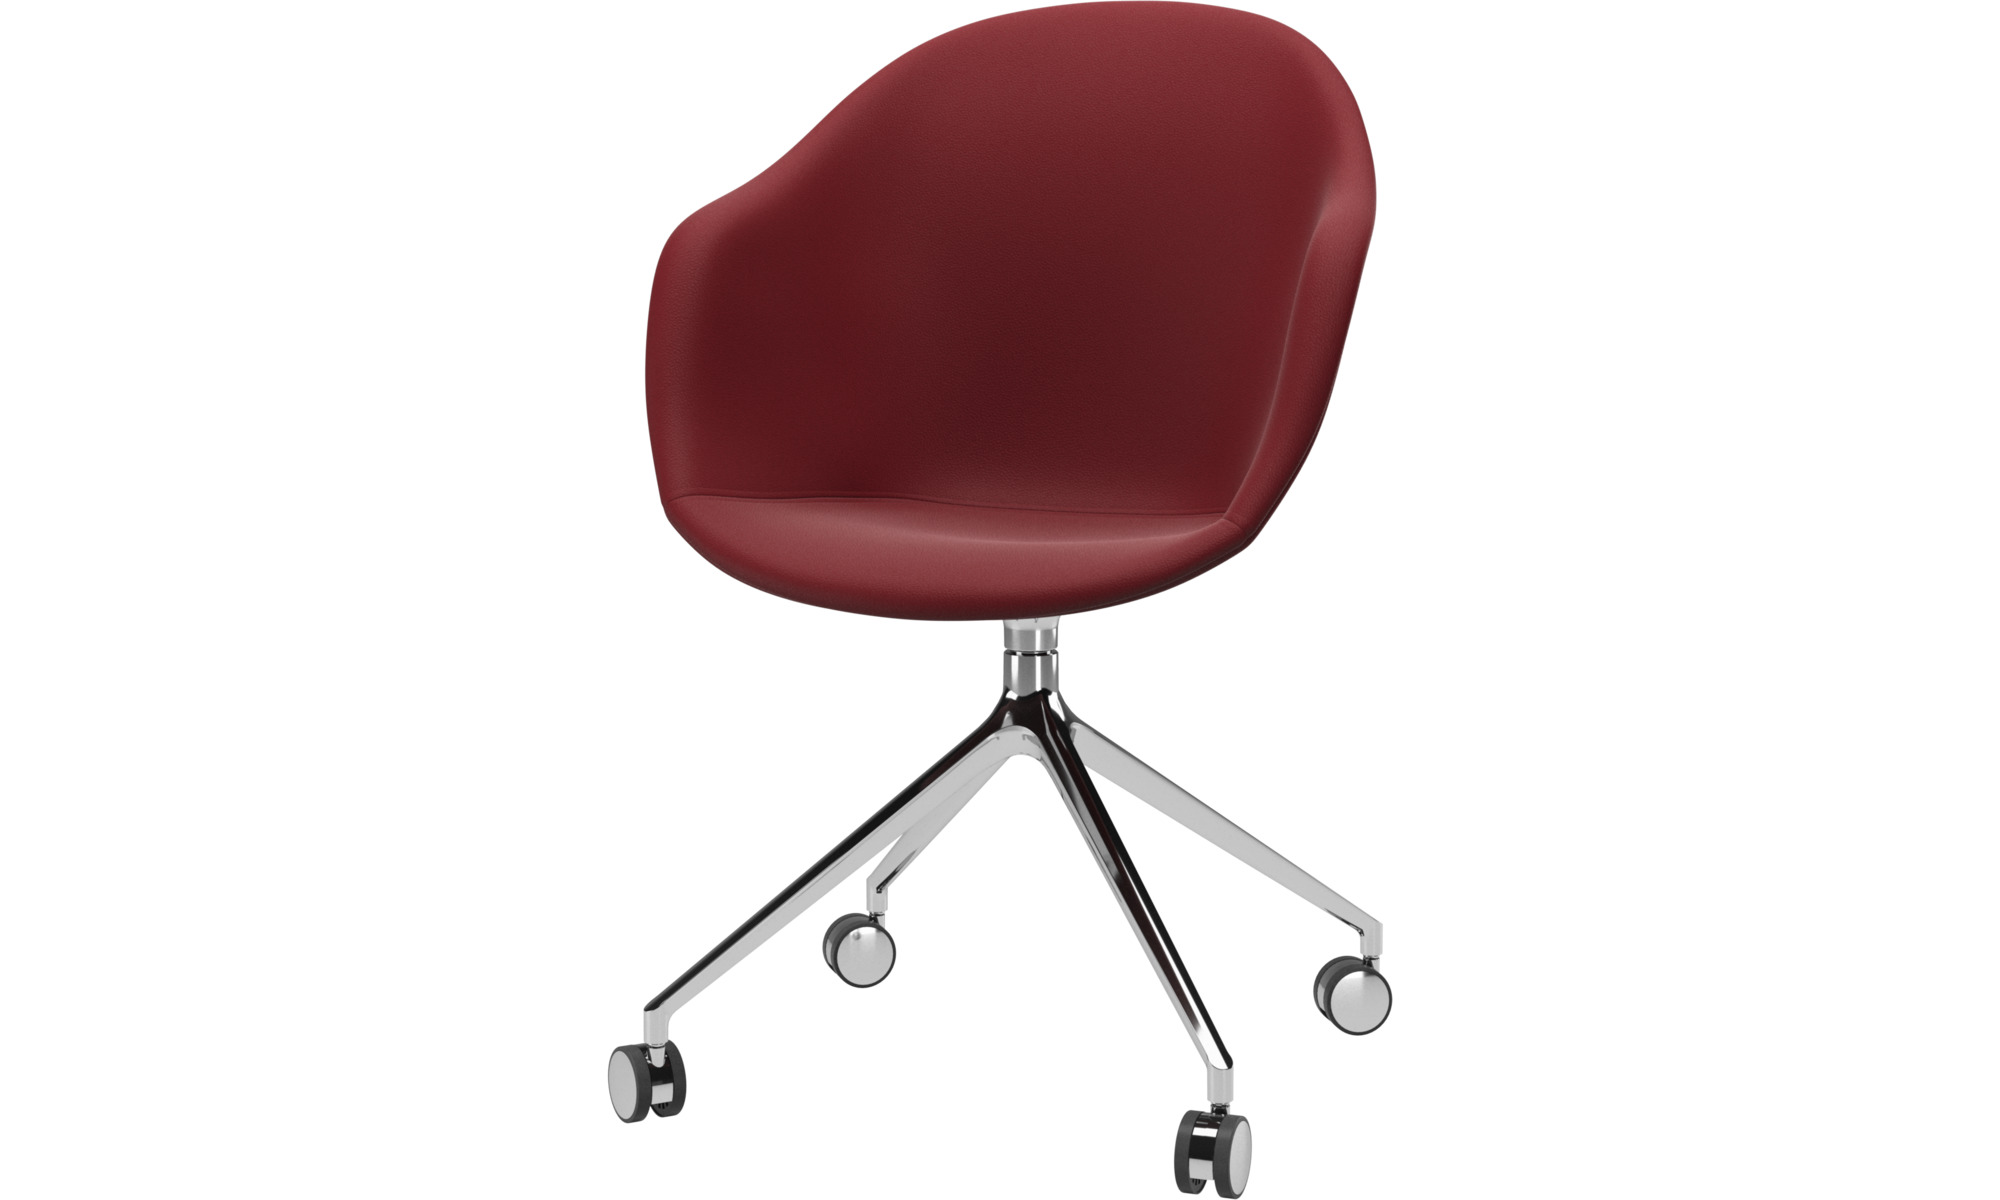 Home office chairs - Adelaide chair with swivel function and wheels - Red - Leather